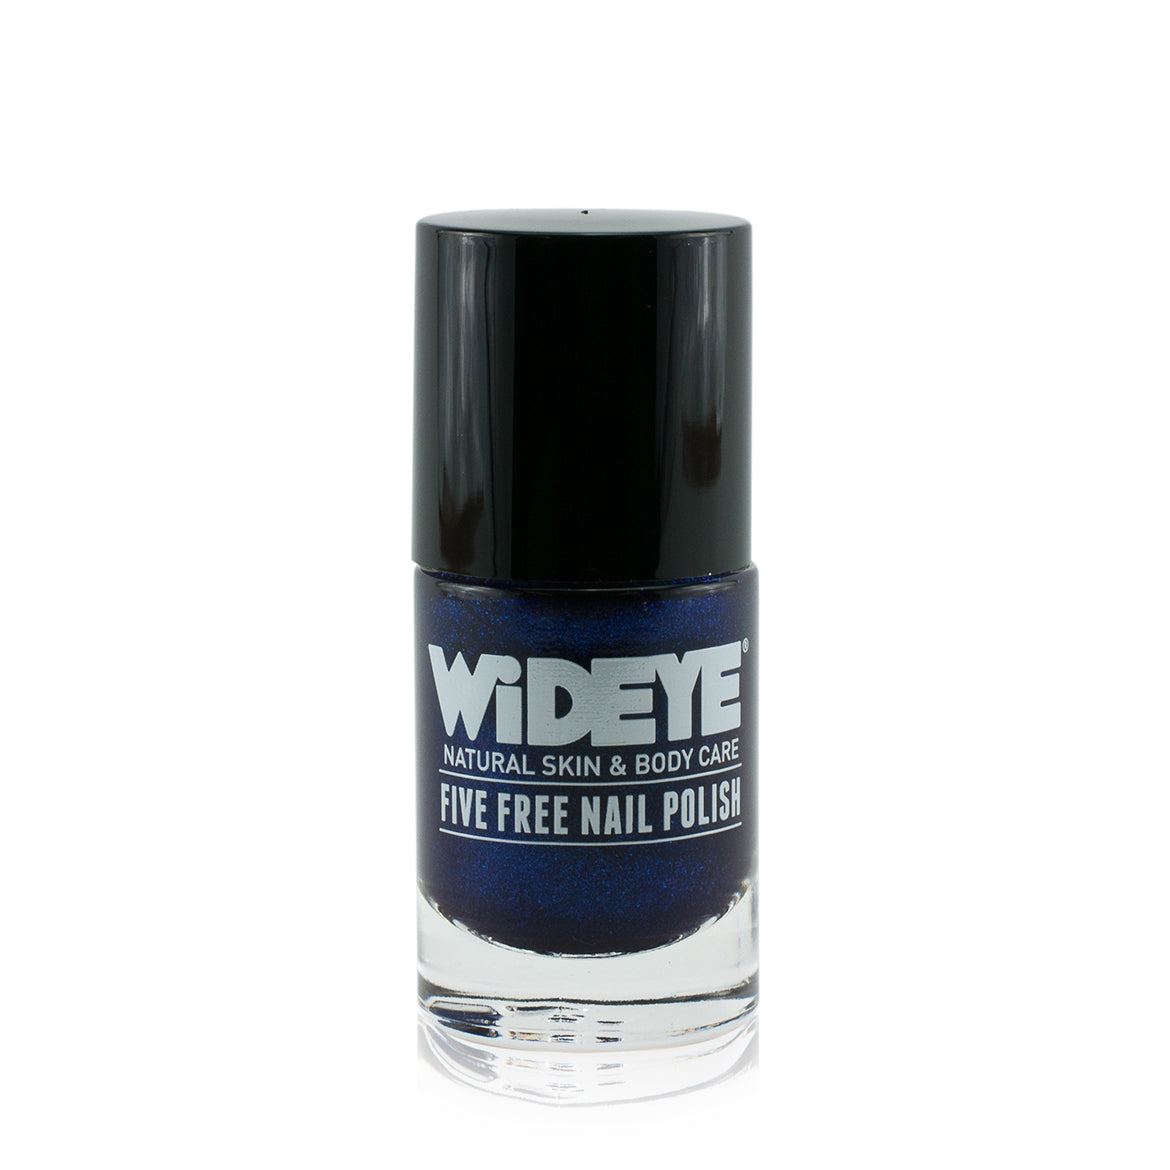 Intense cobalt blue nail varnish in glass bottle by WiDEYE.